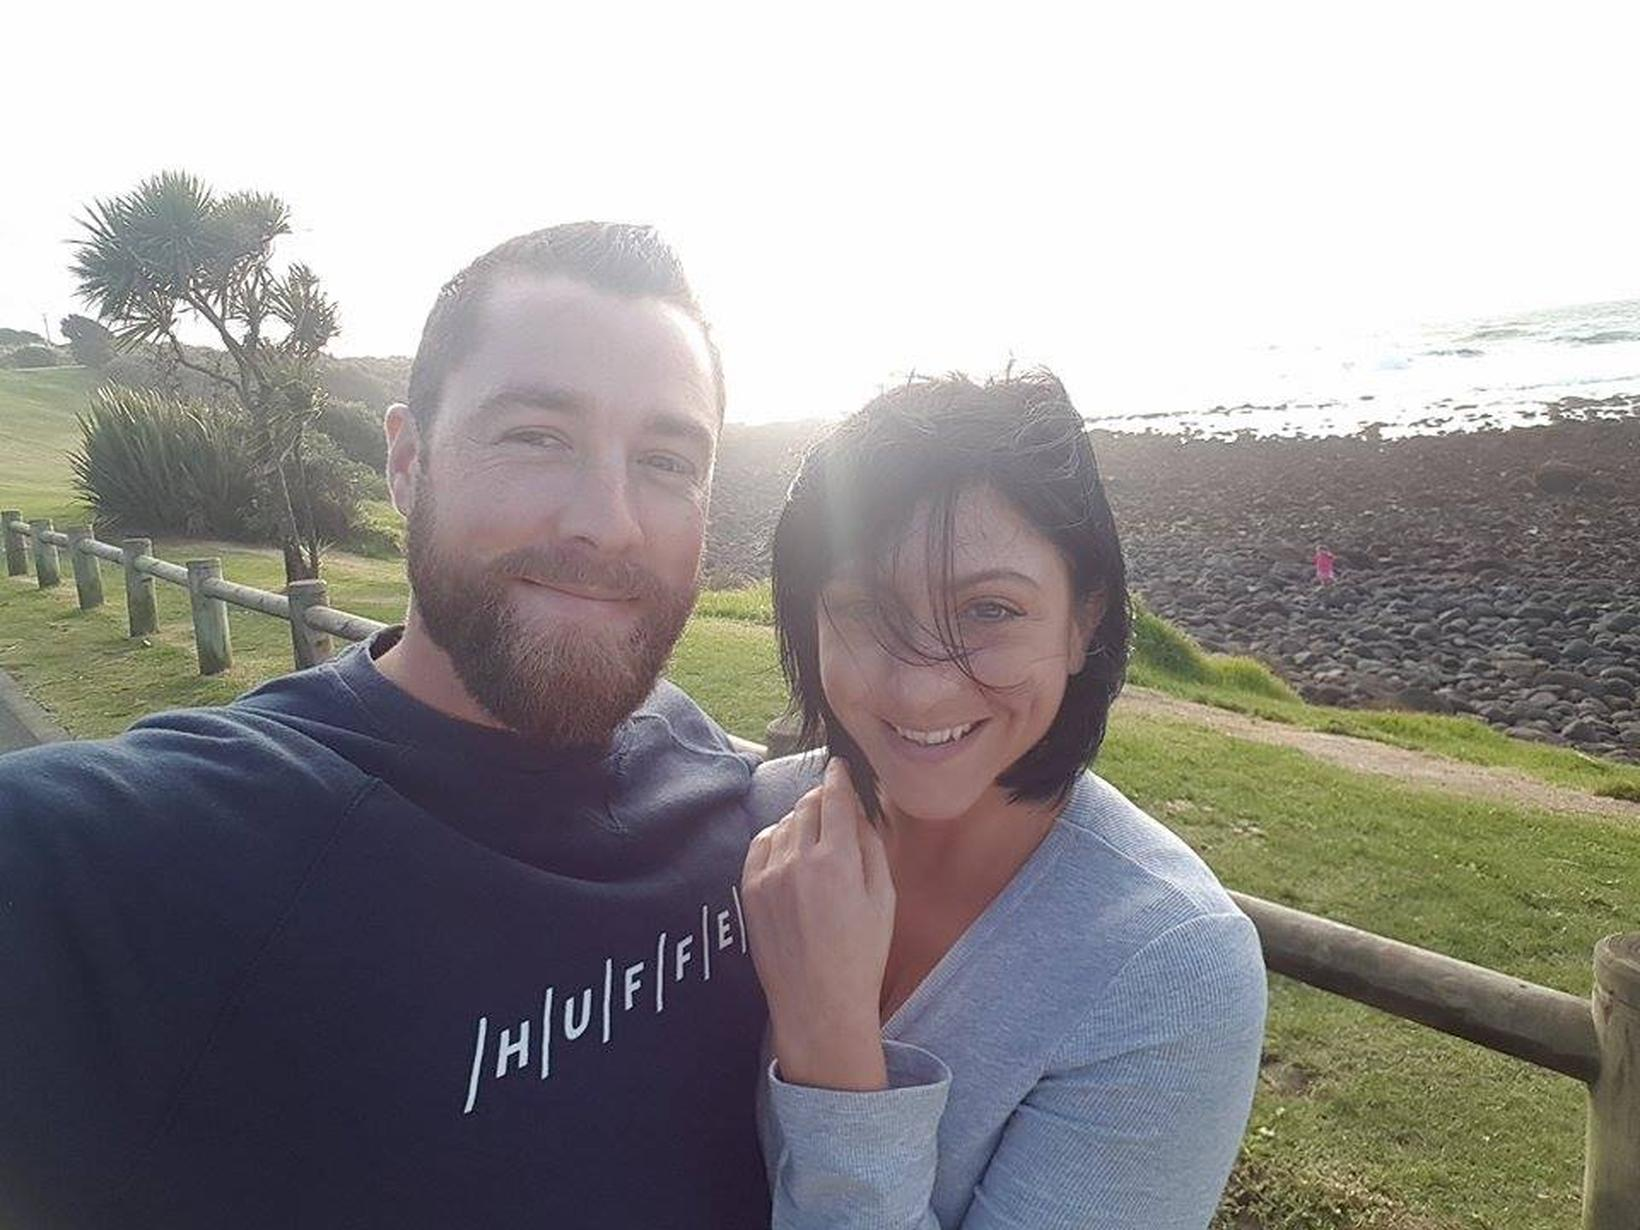 Kate & Tom from Auckland, New Zealand